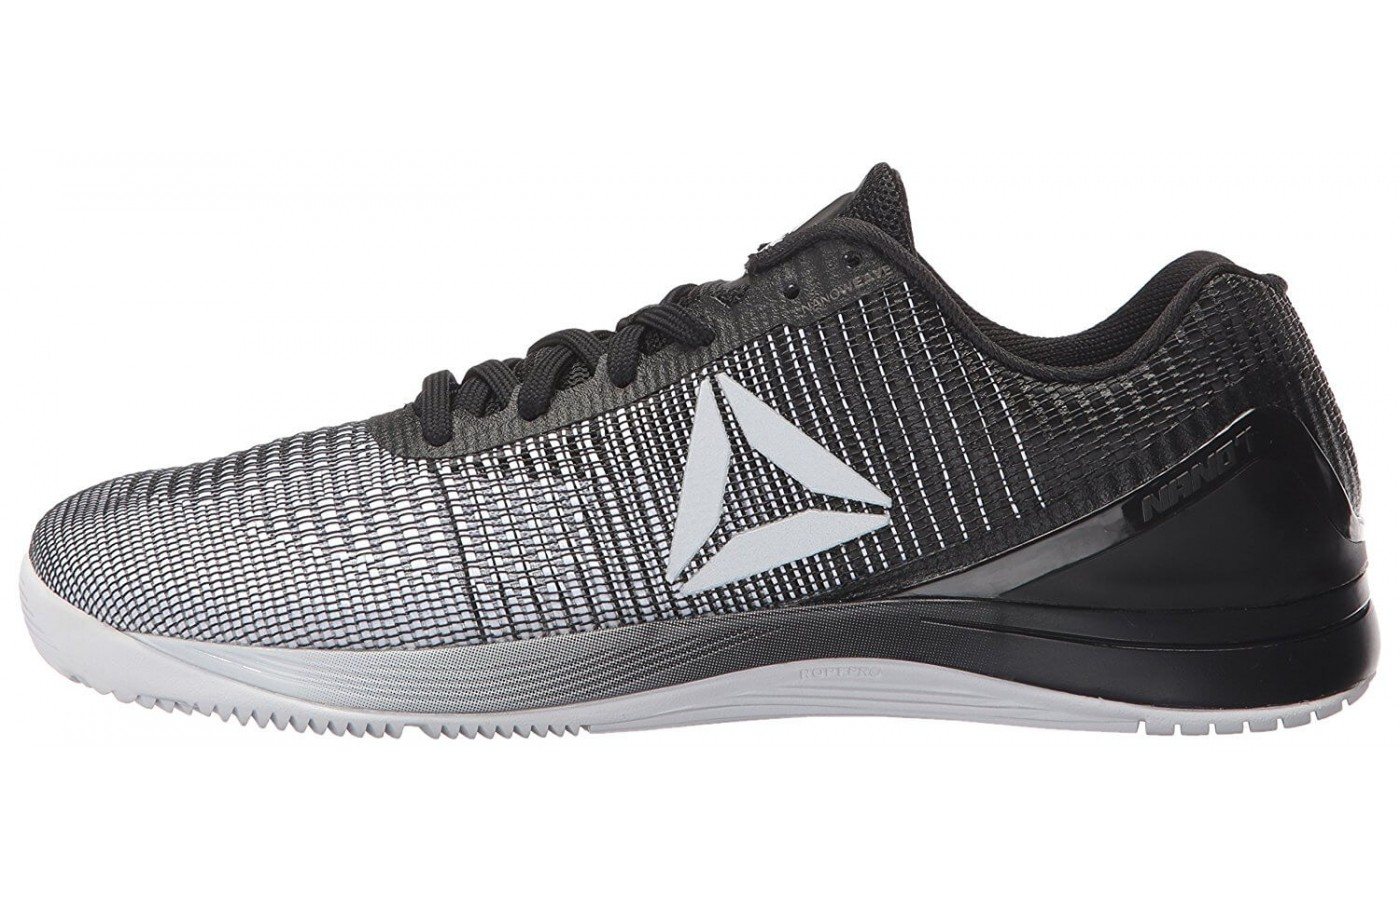 Reebok CrossFit Nano 7 Weave Fully Reviewed